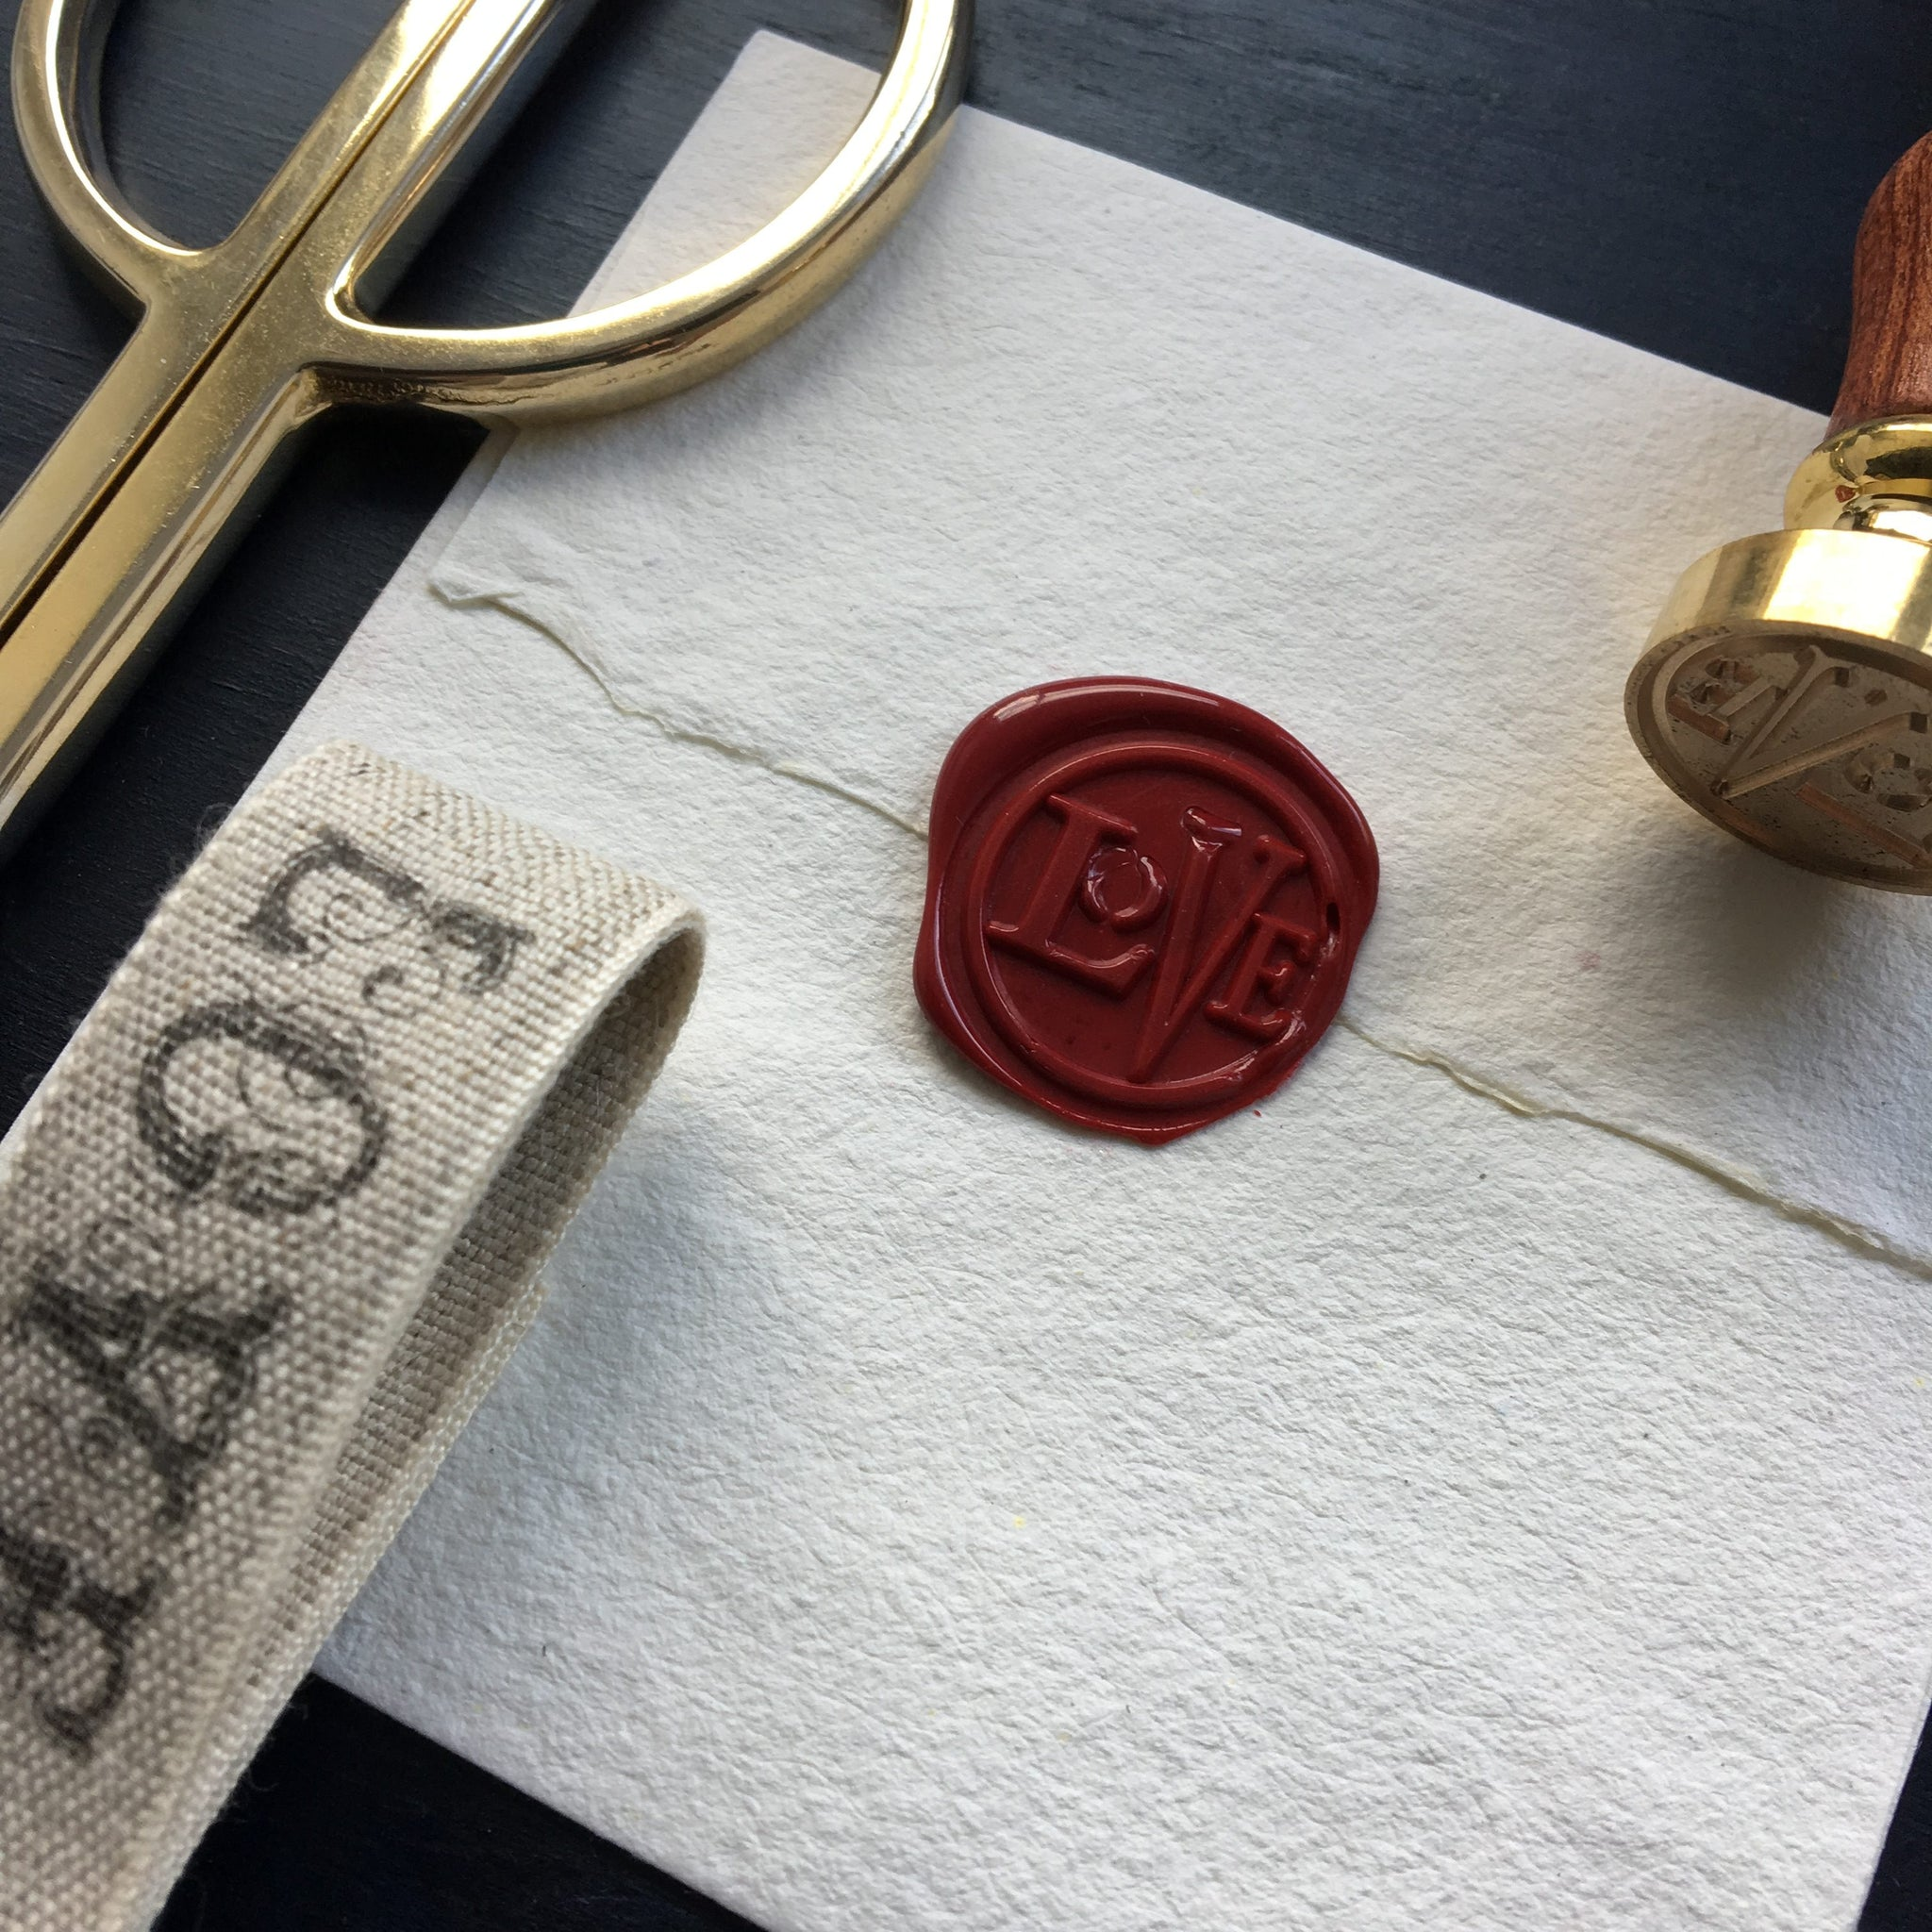 Wax Love Seal